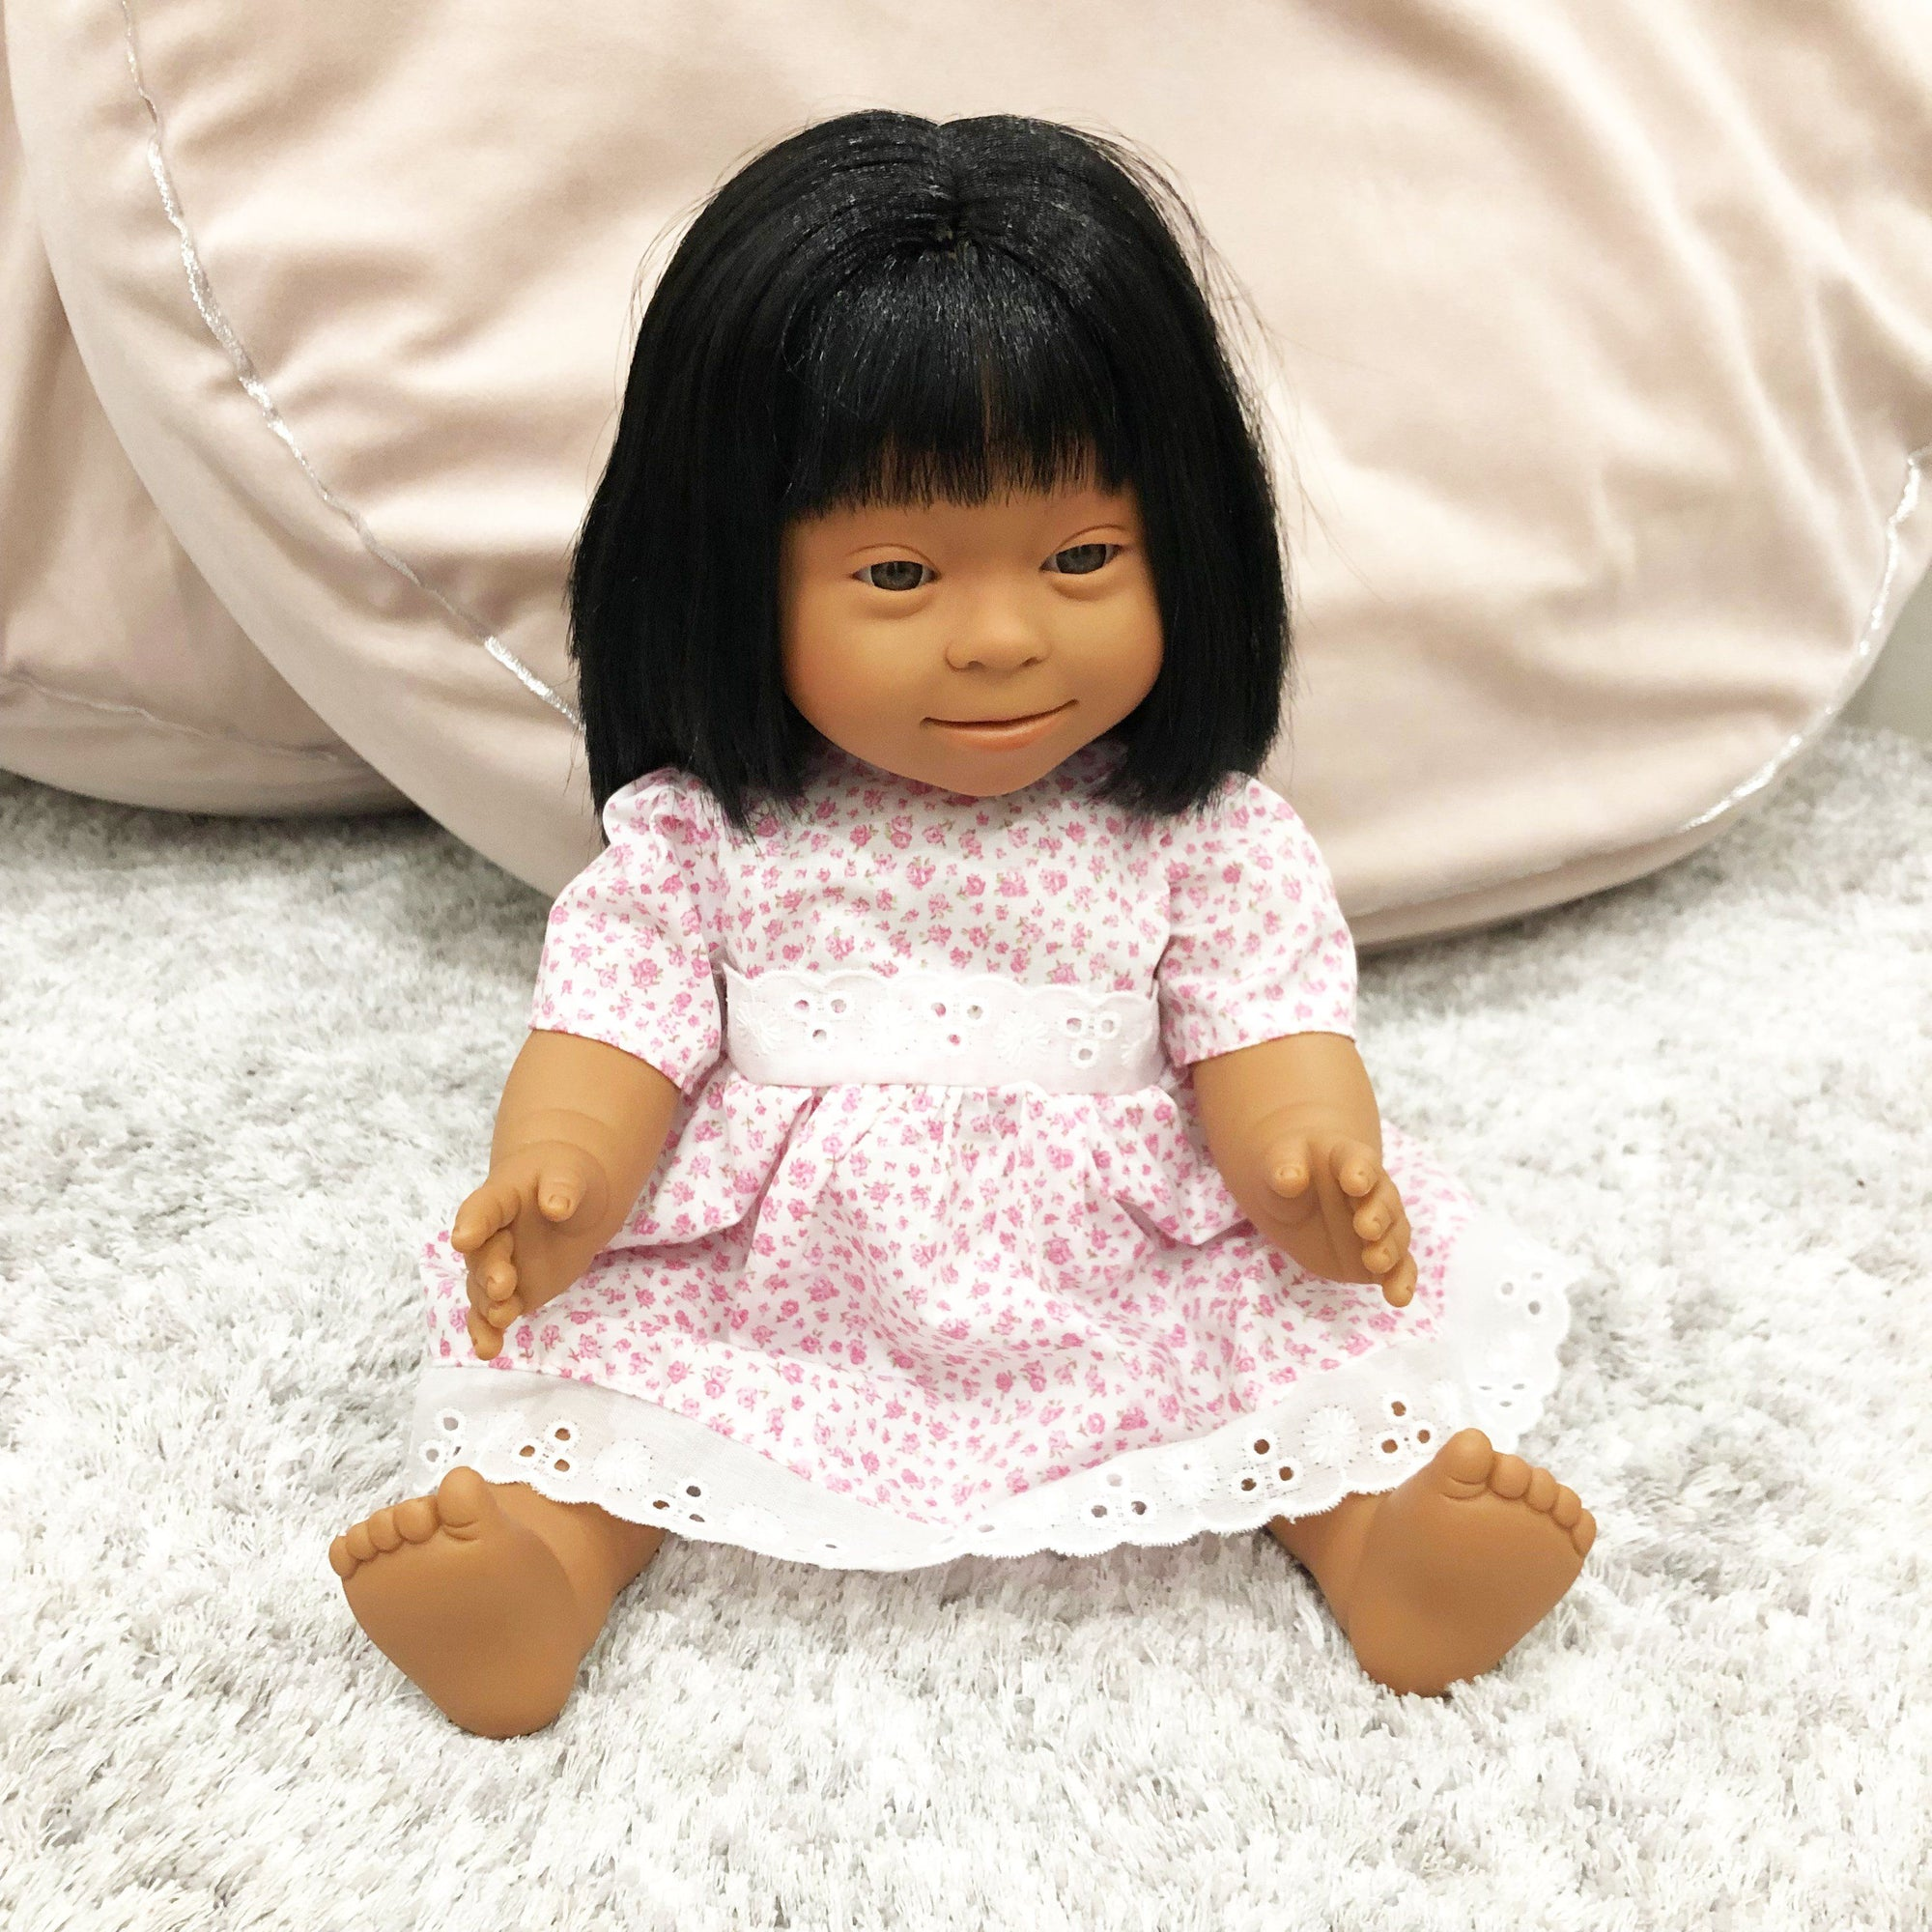 Down Syndrome Baby Girl Doll (Asian)